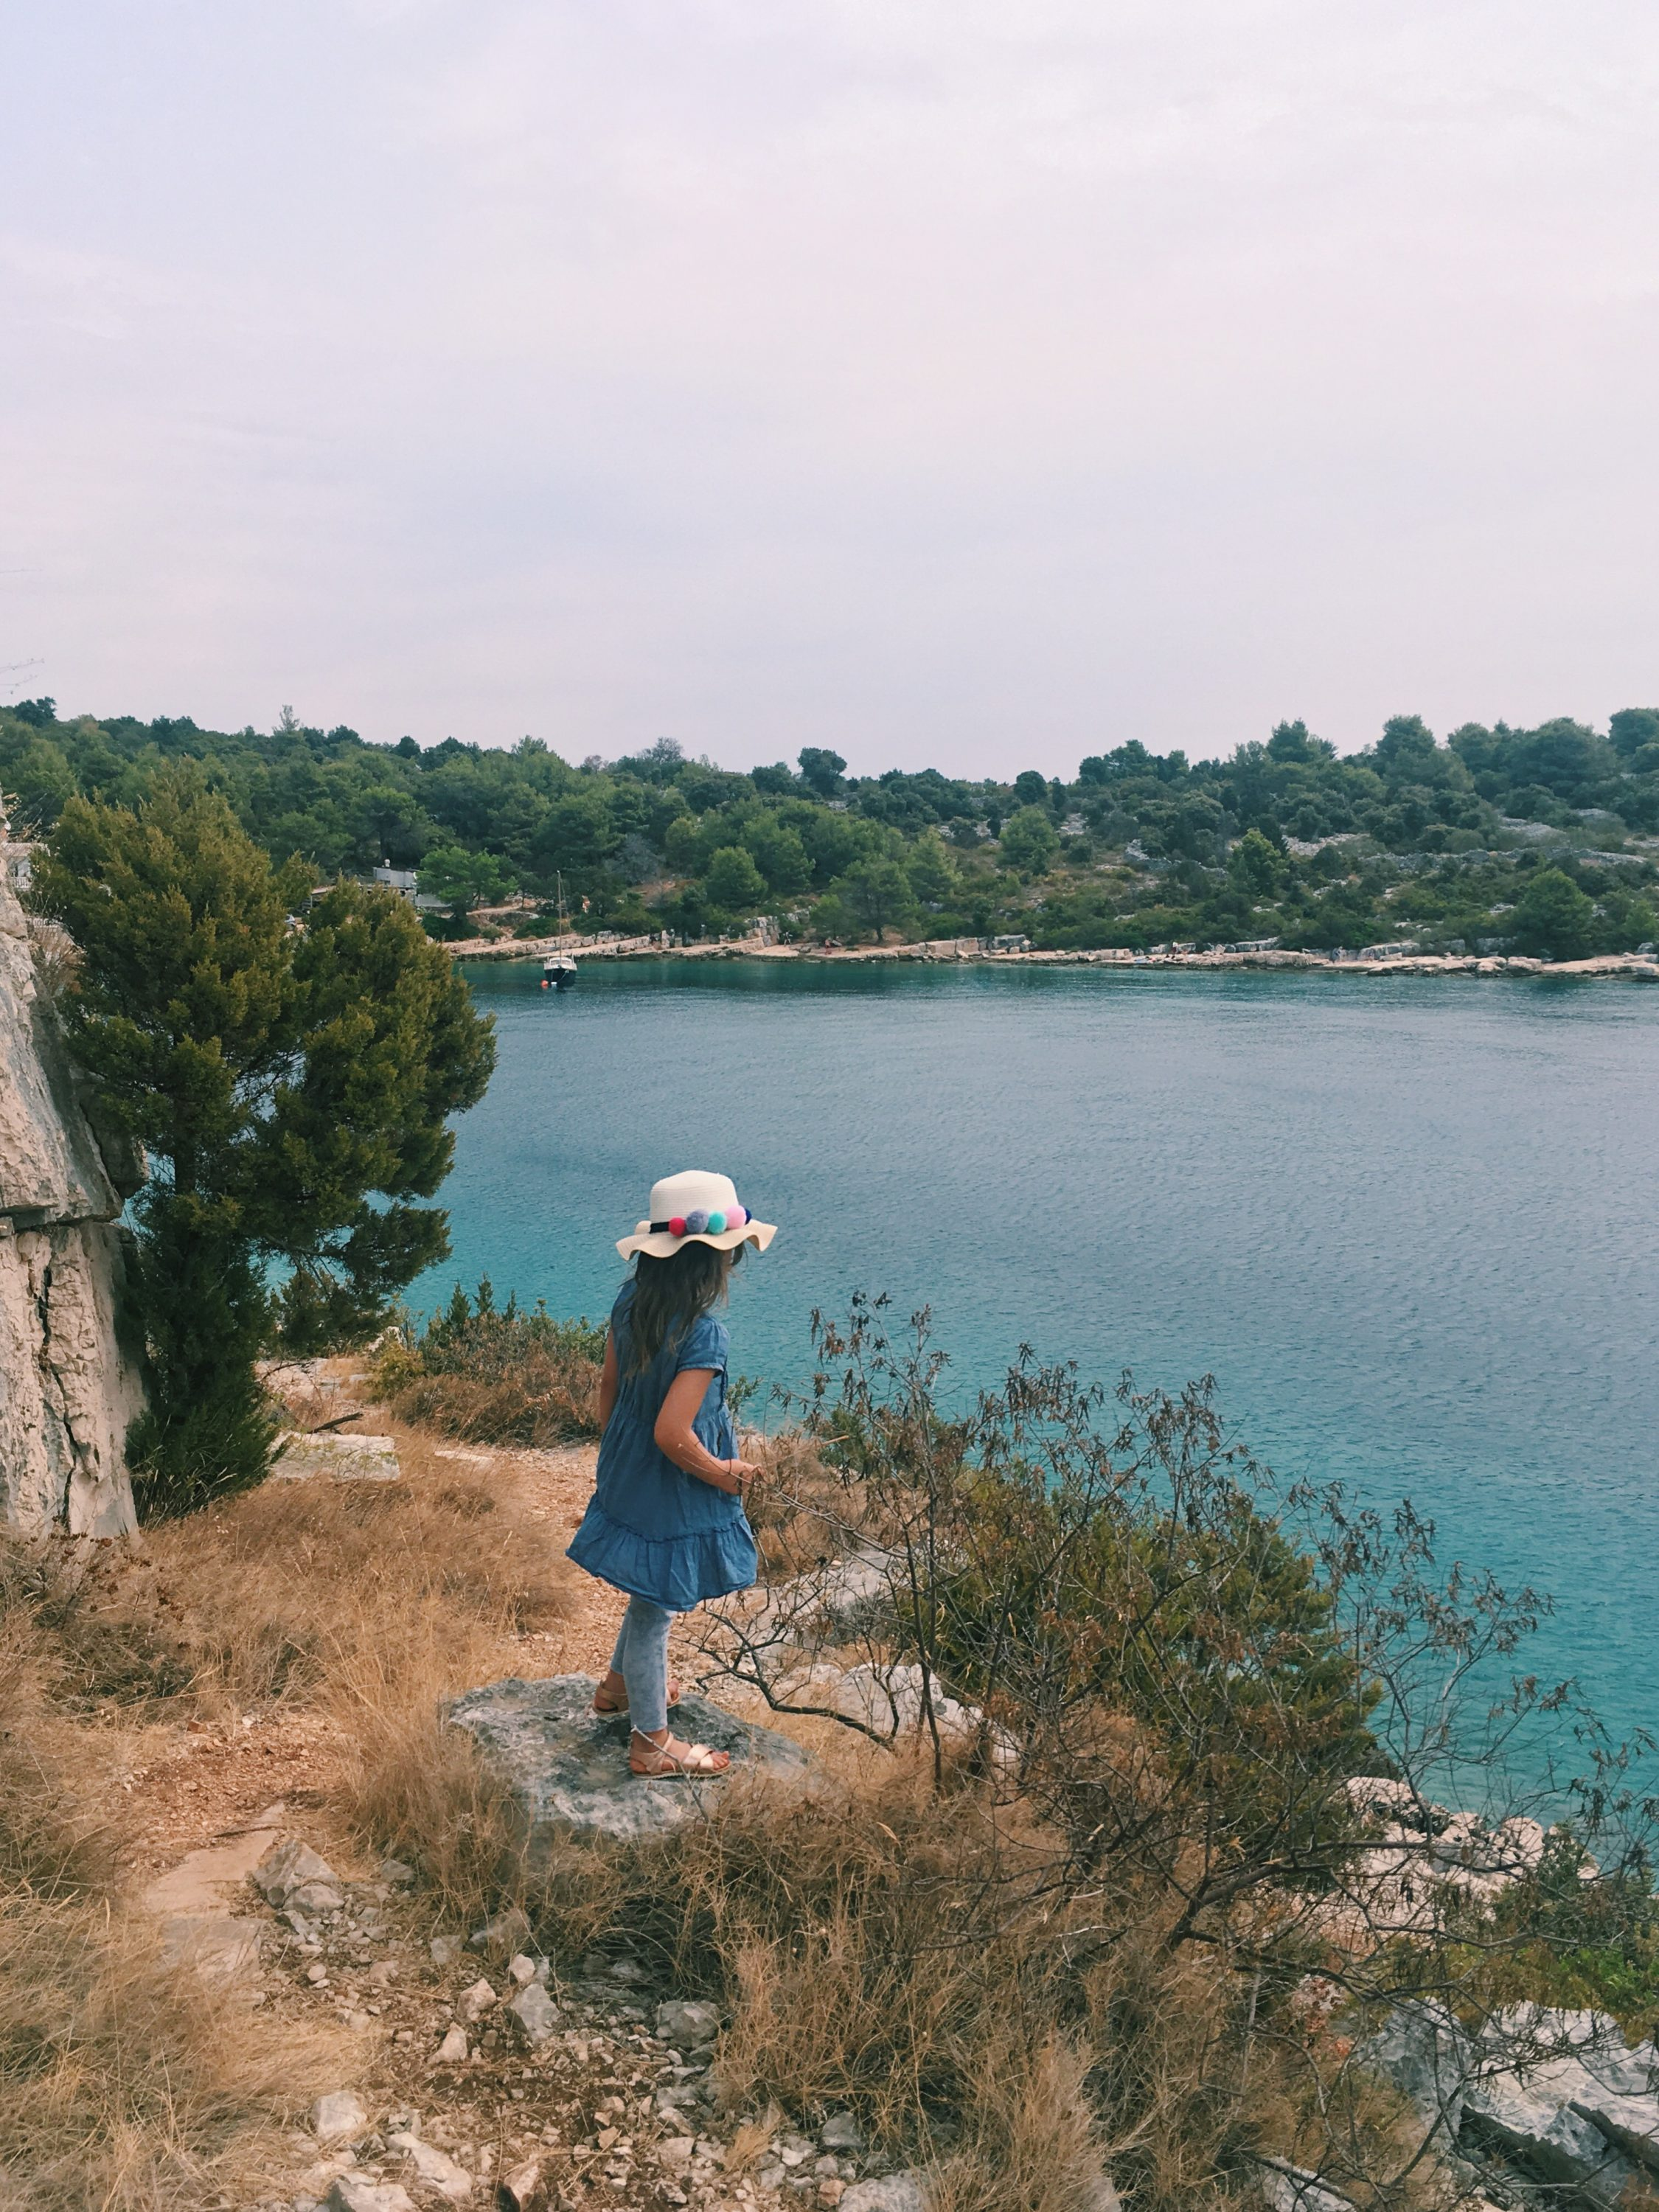 Murter Island Croatia full of life free spirit nature mom blogger jezera tisno happiness adventure mama blogerica traveling kids lifestyle sea adriatic jadransko more more less ines blogger travel boat summer murtar